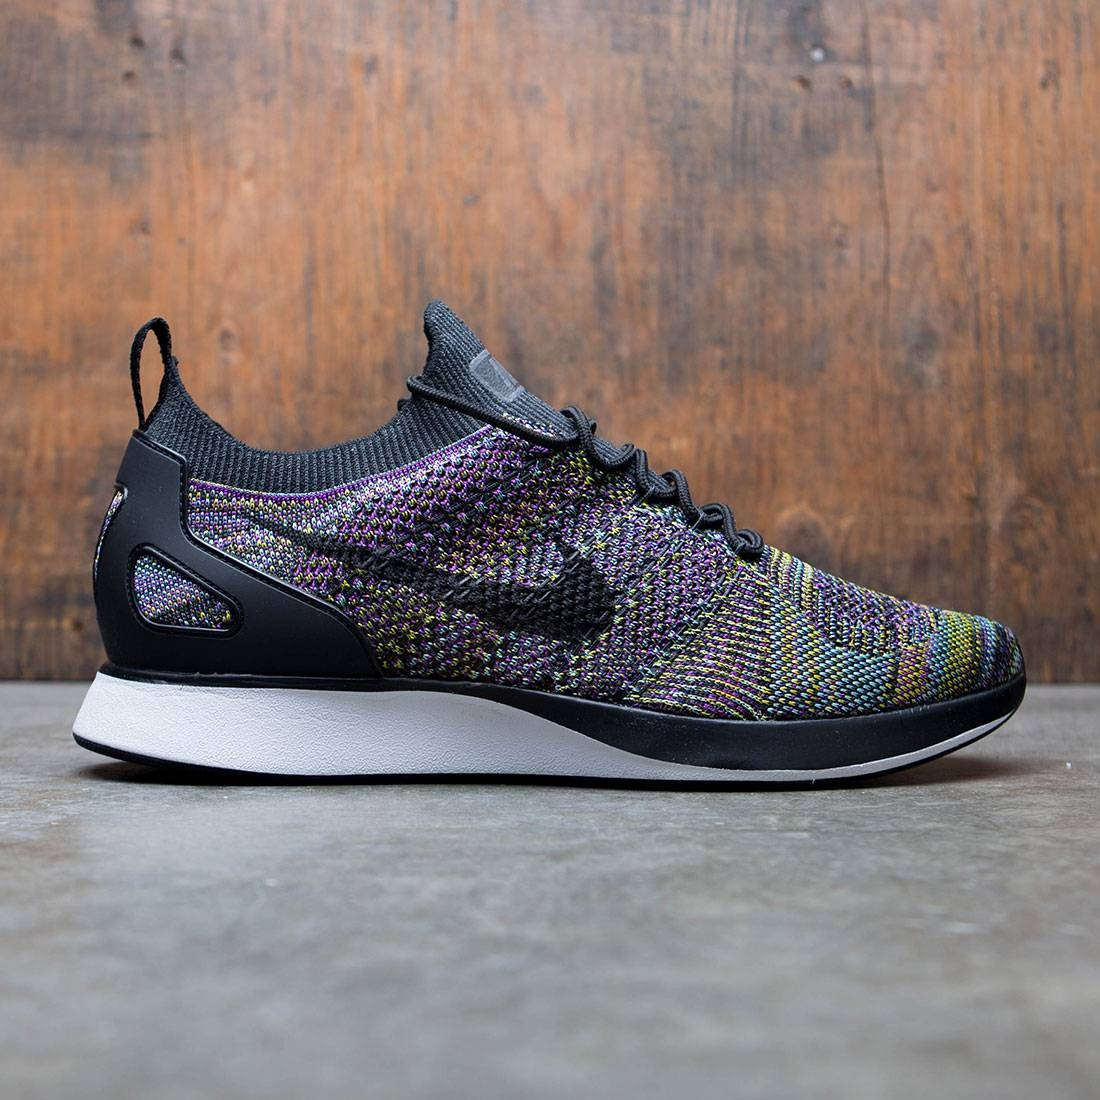 19076a4eece98 nike men air zoom mariah flyknit racer black black vivid purple bright  citron